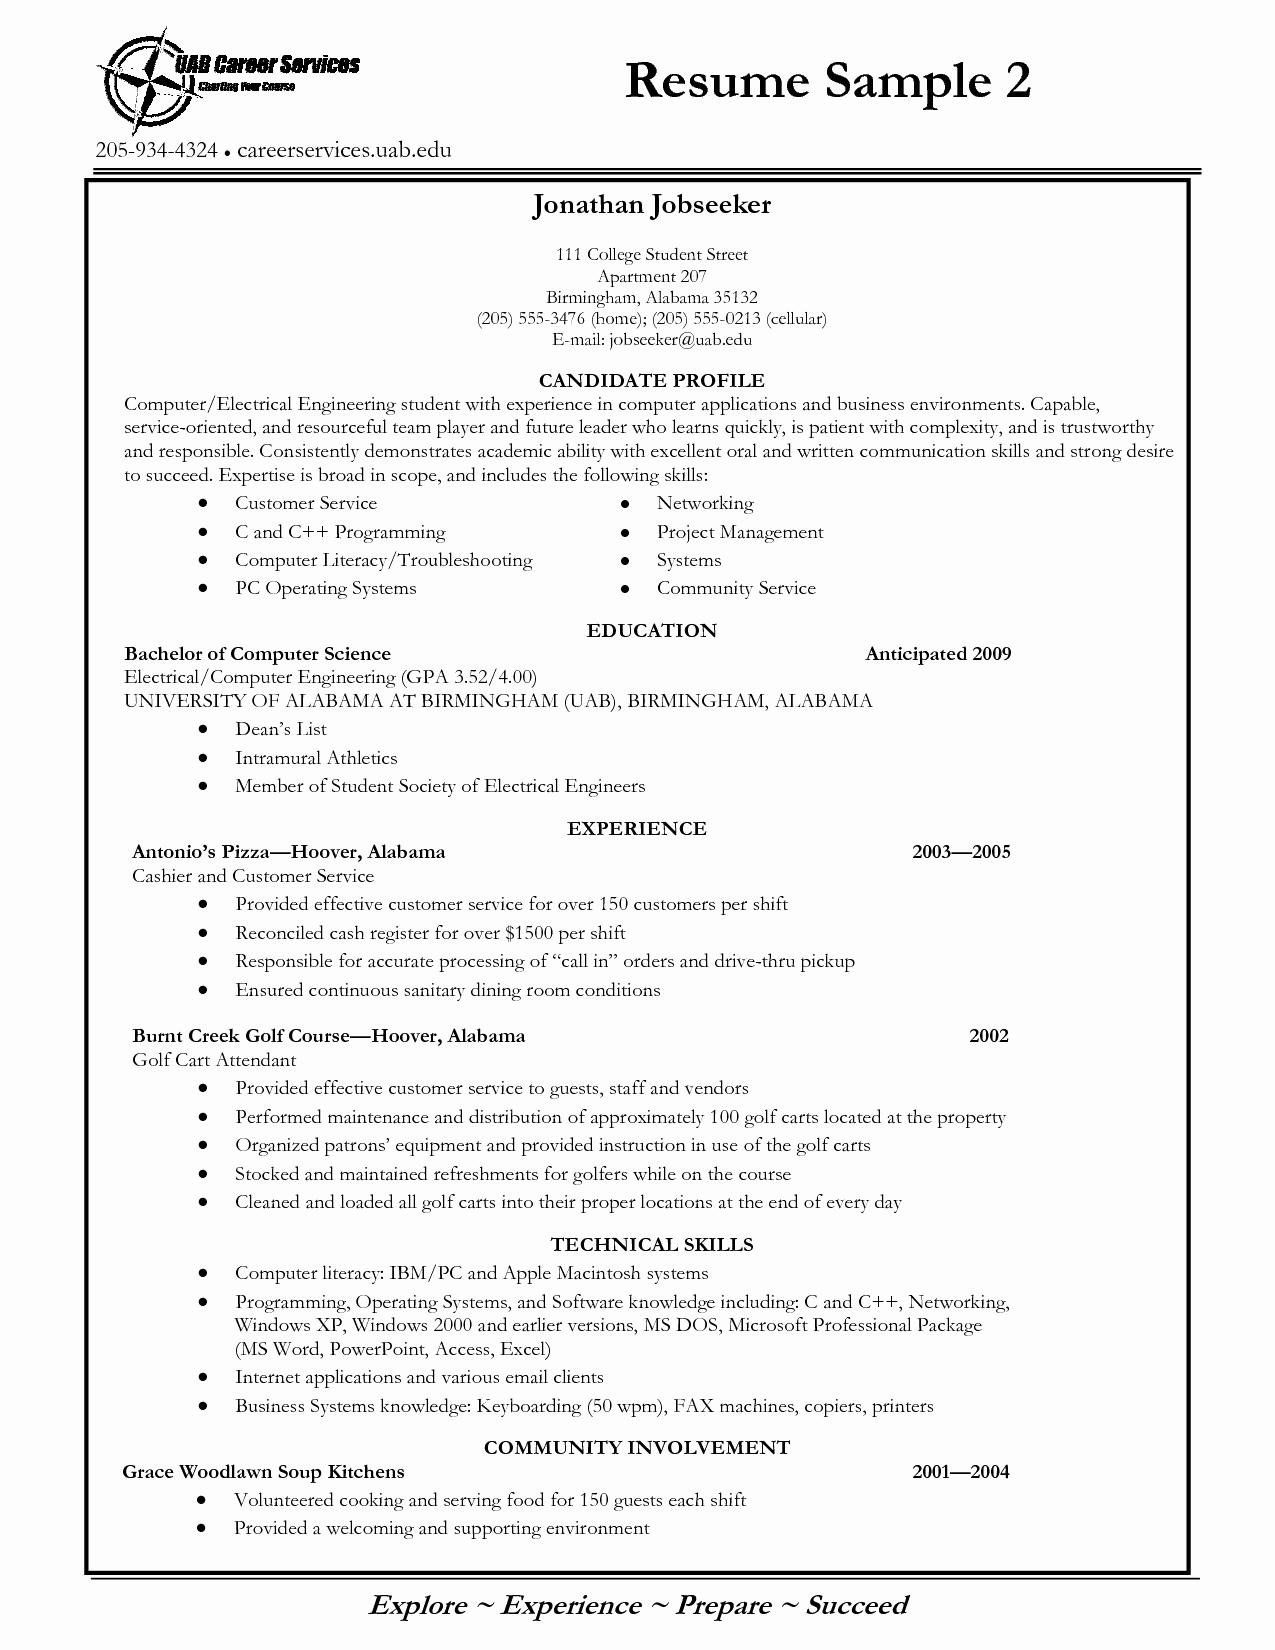 University Of Alabama Resume Template - Business Analyst Resume Samples New Business Analyst Resume